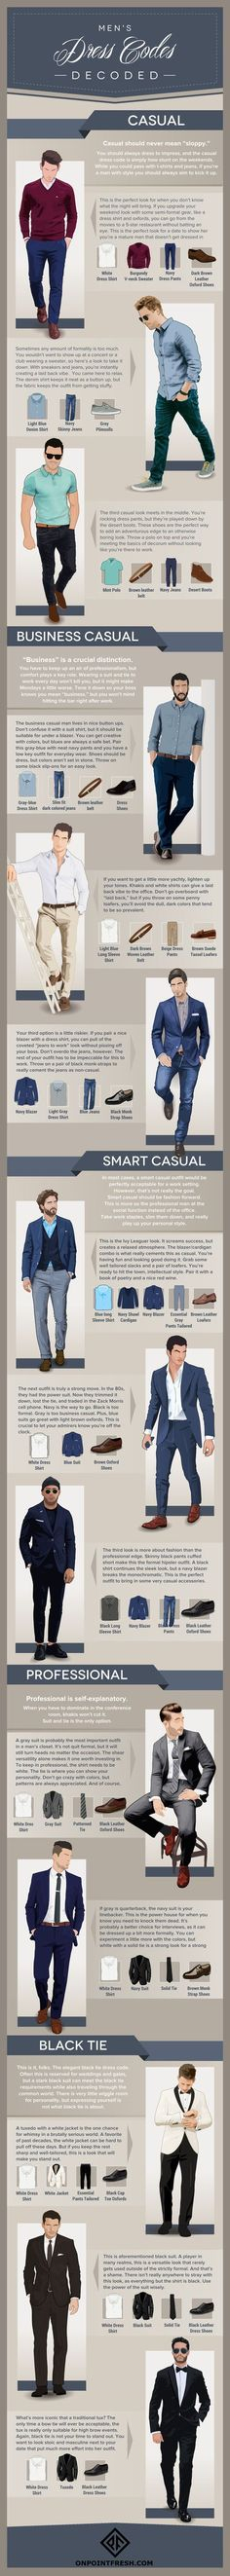 With the oh so many different types of men's dress codes out there, it can get a little confusing. What might pass off as...